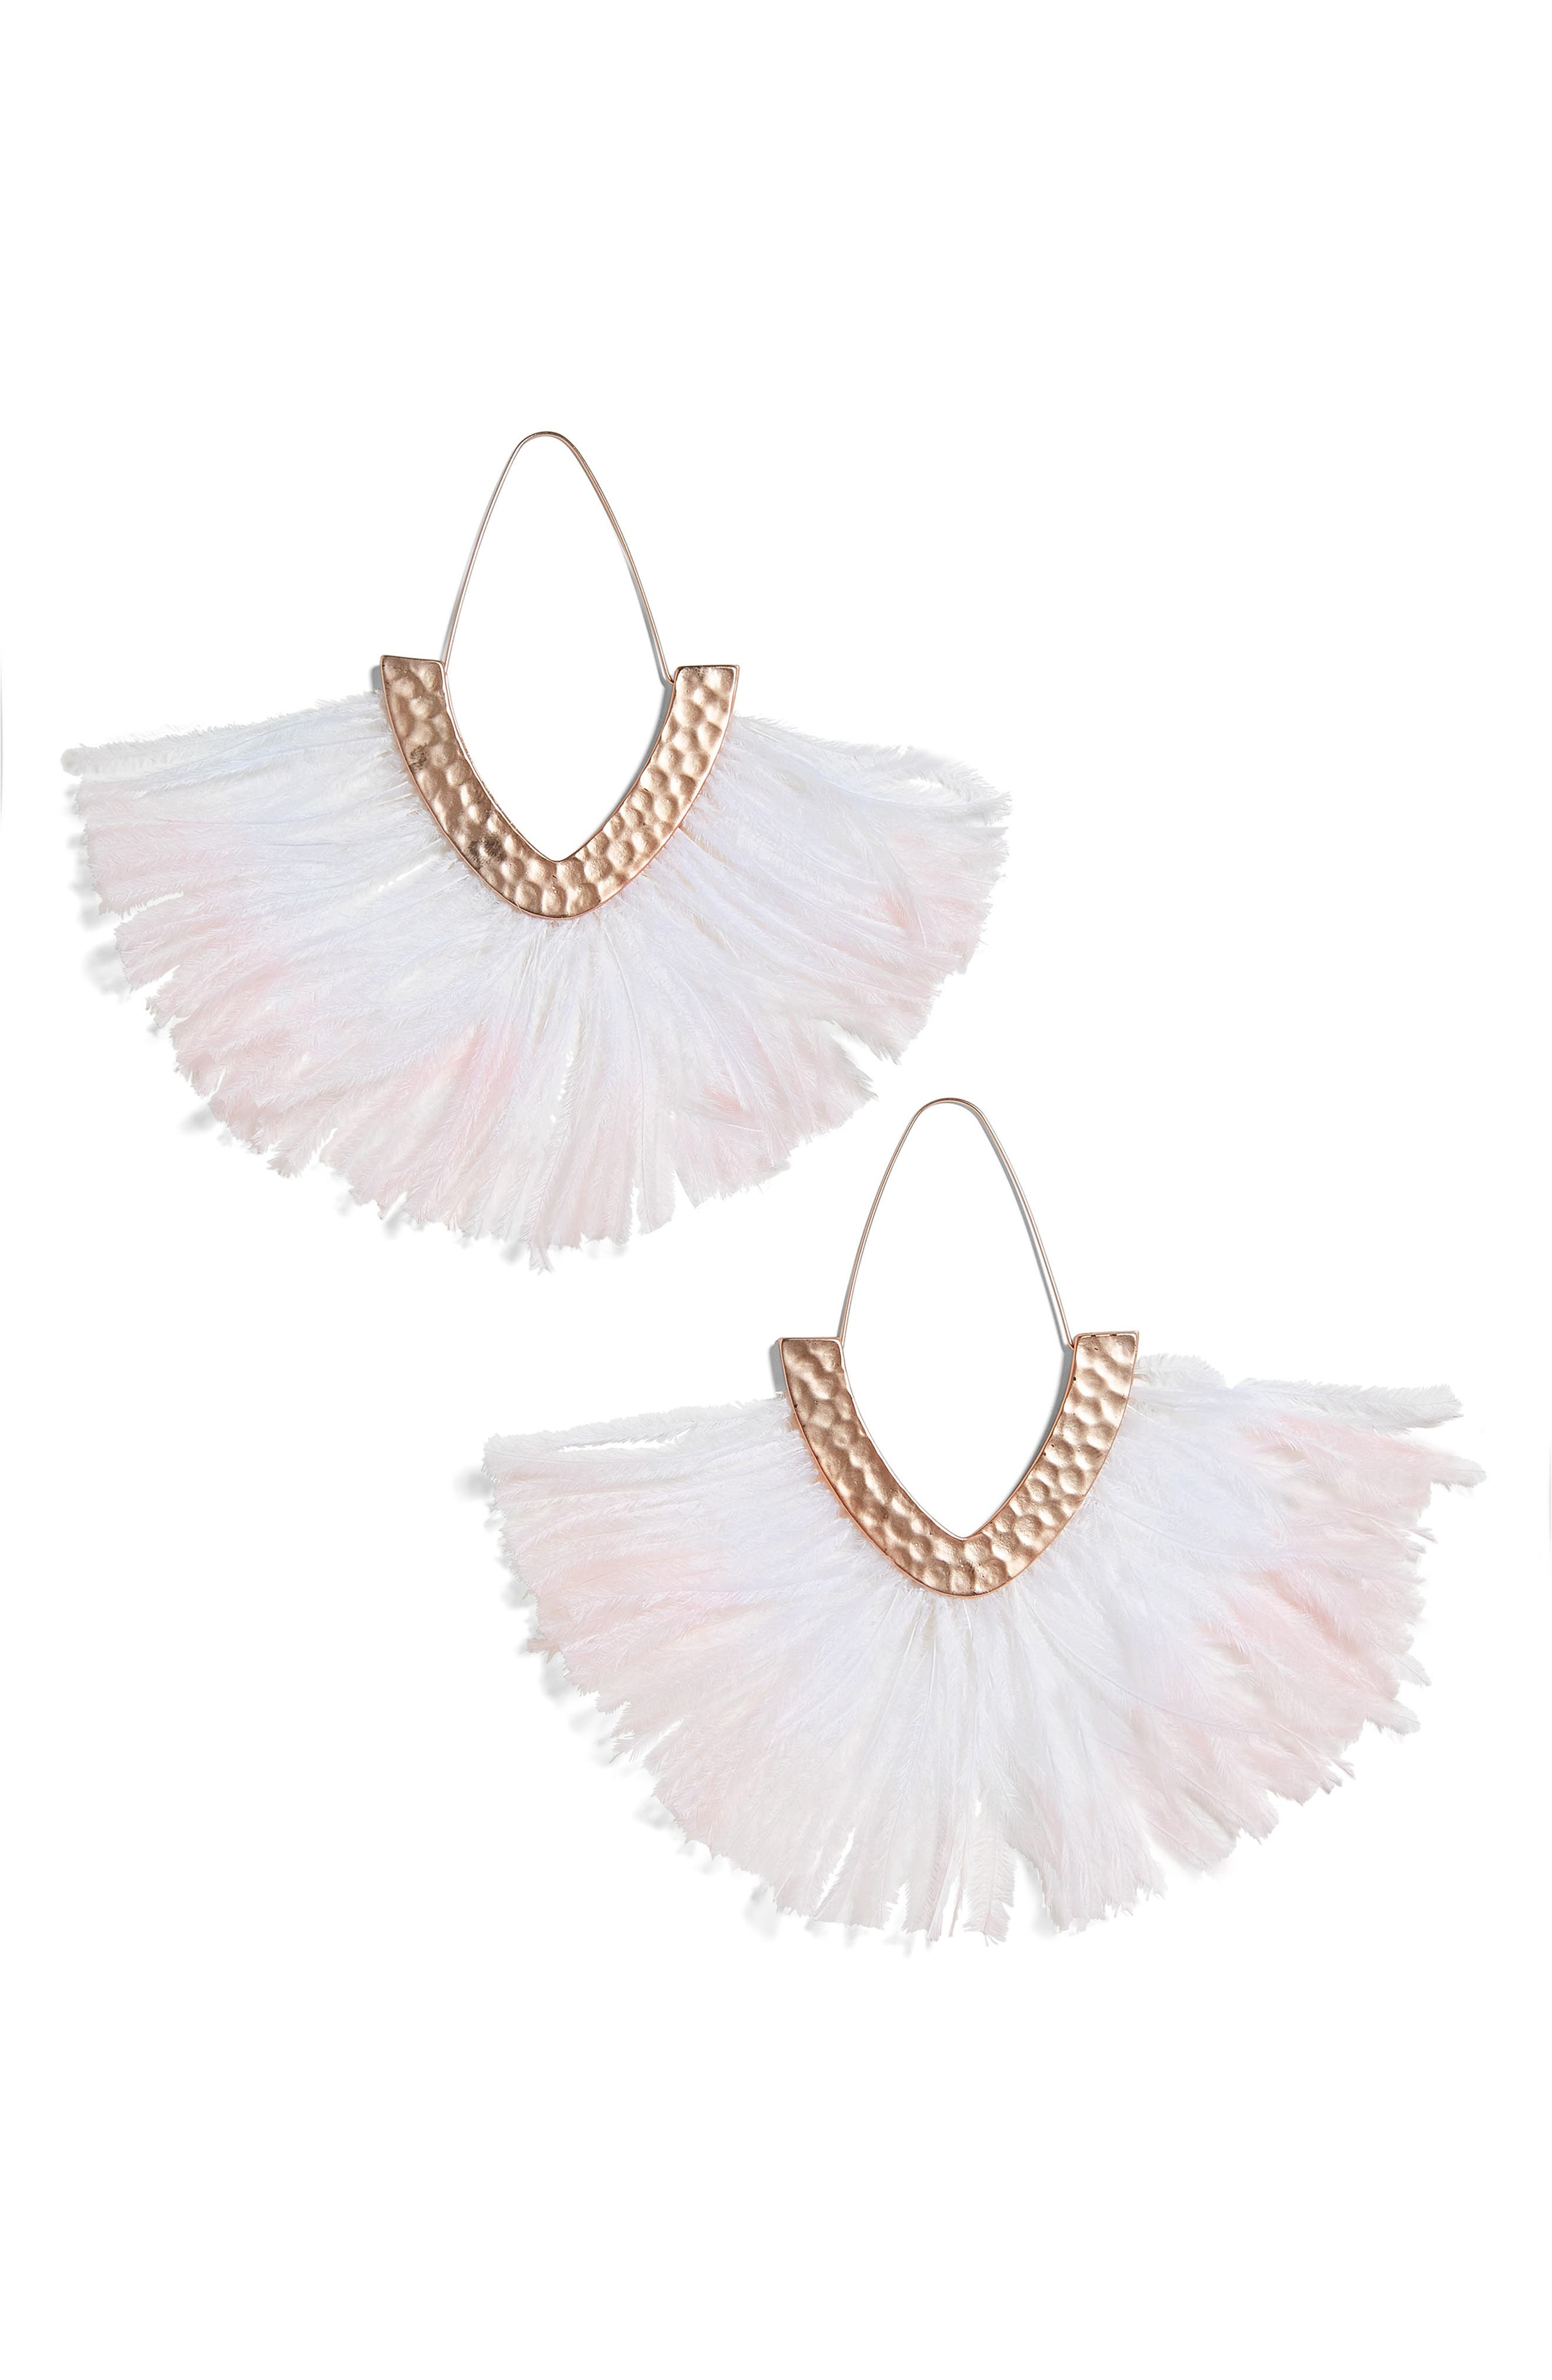 BAUBLEBAR, Feather Fringe Drop Earrings, Main thumbnail 1, color, BLUSH